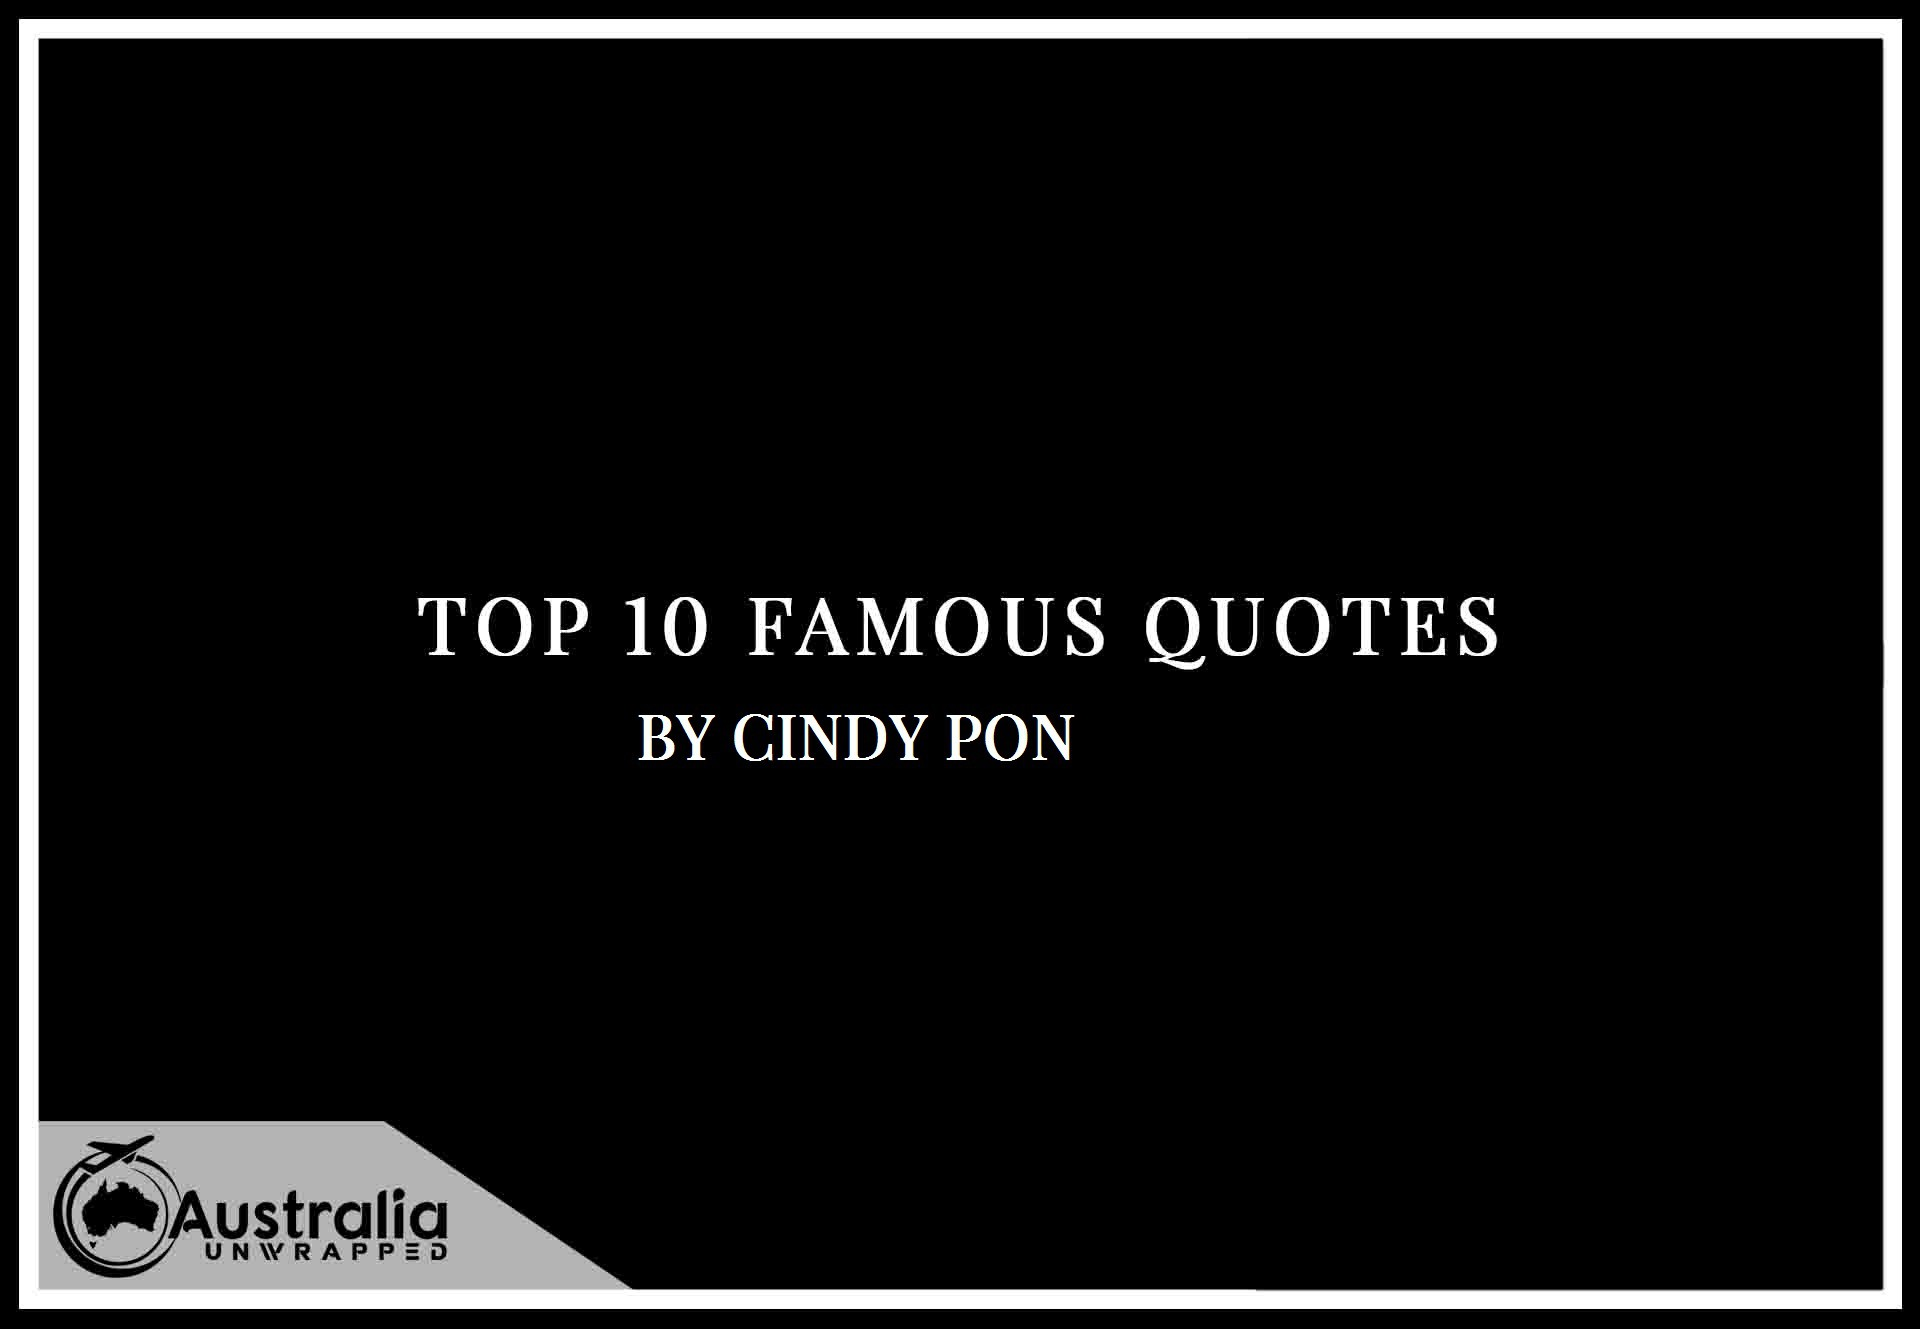 Cindy Pon's Top 10 Popular and Famous Quotes